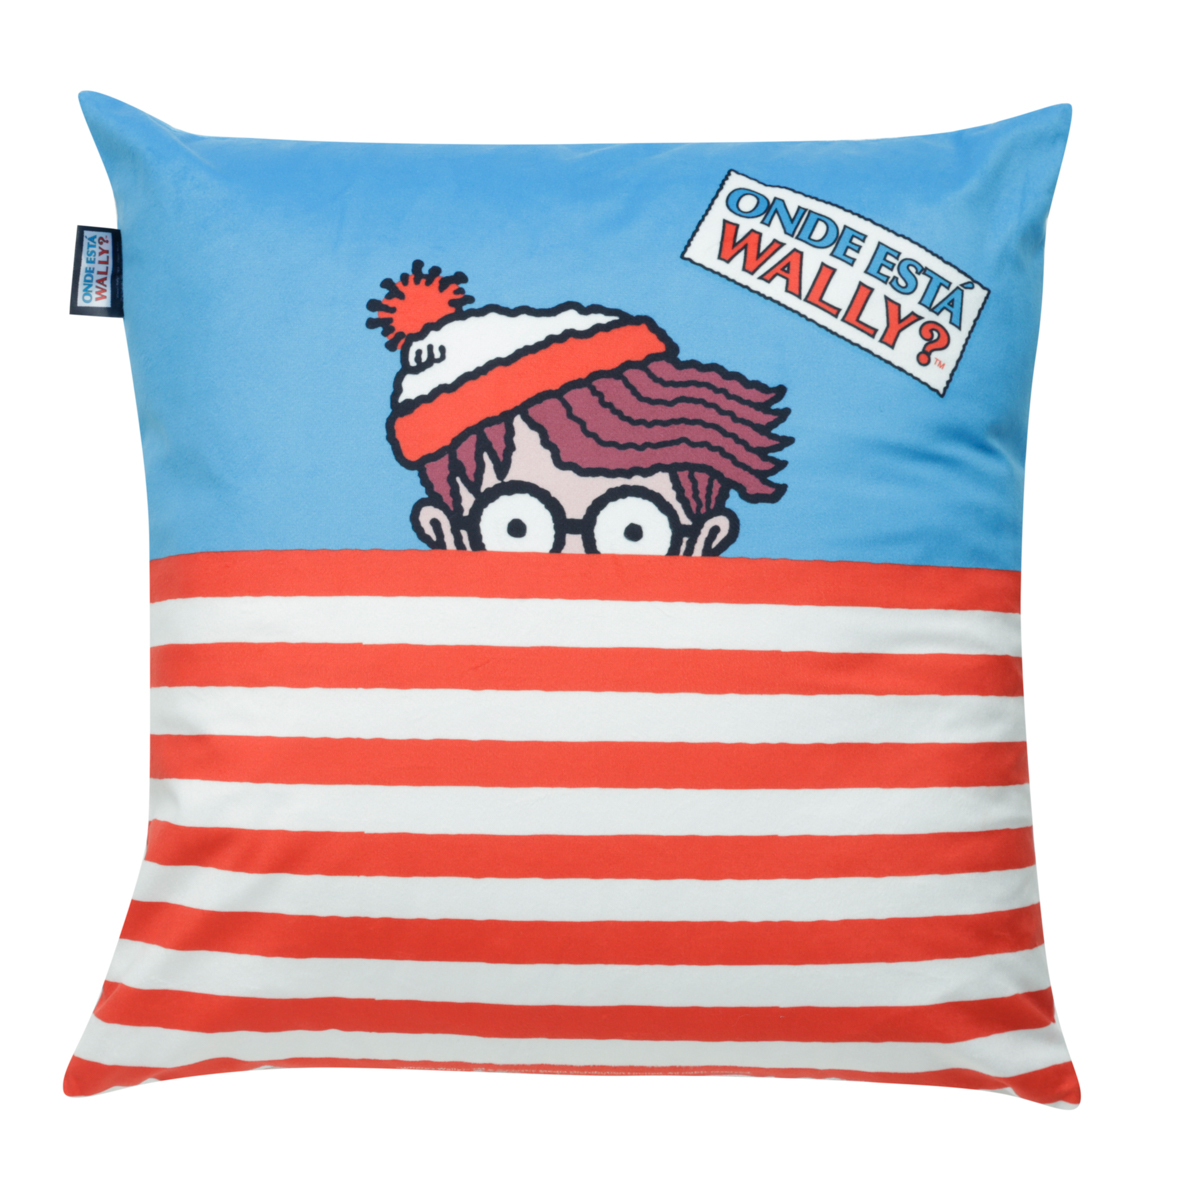 CAPA ALMOFADA POLIESTER UVL WALLY WHERE IS WALLY SHIRT COLORIDO 45X45CM